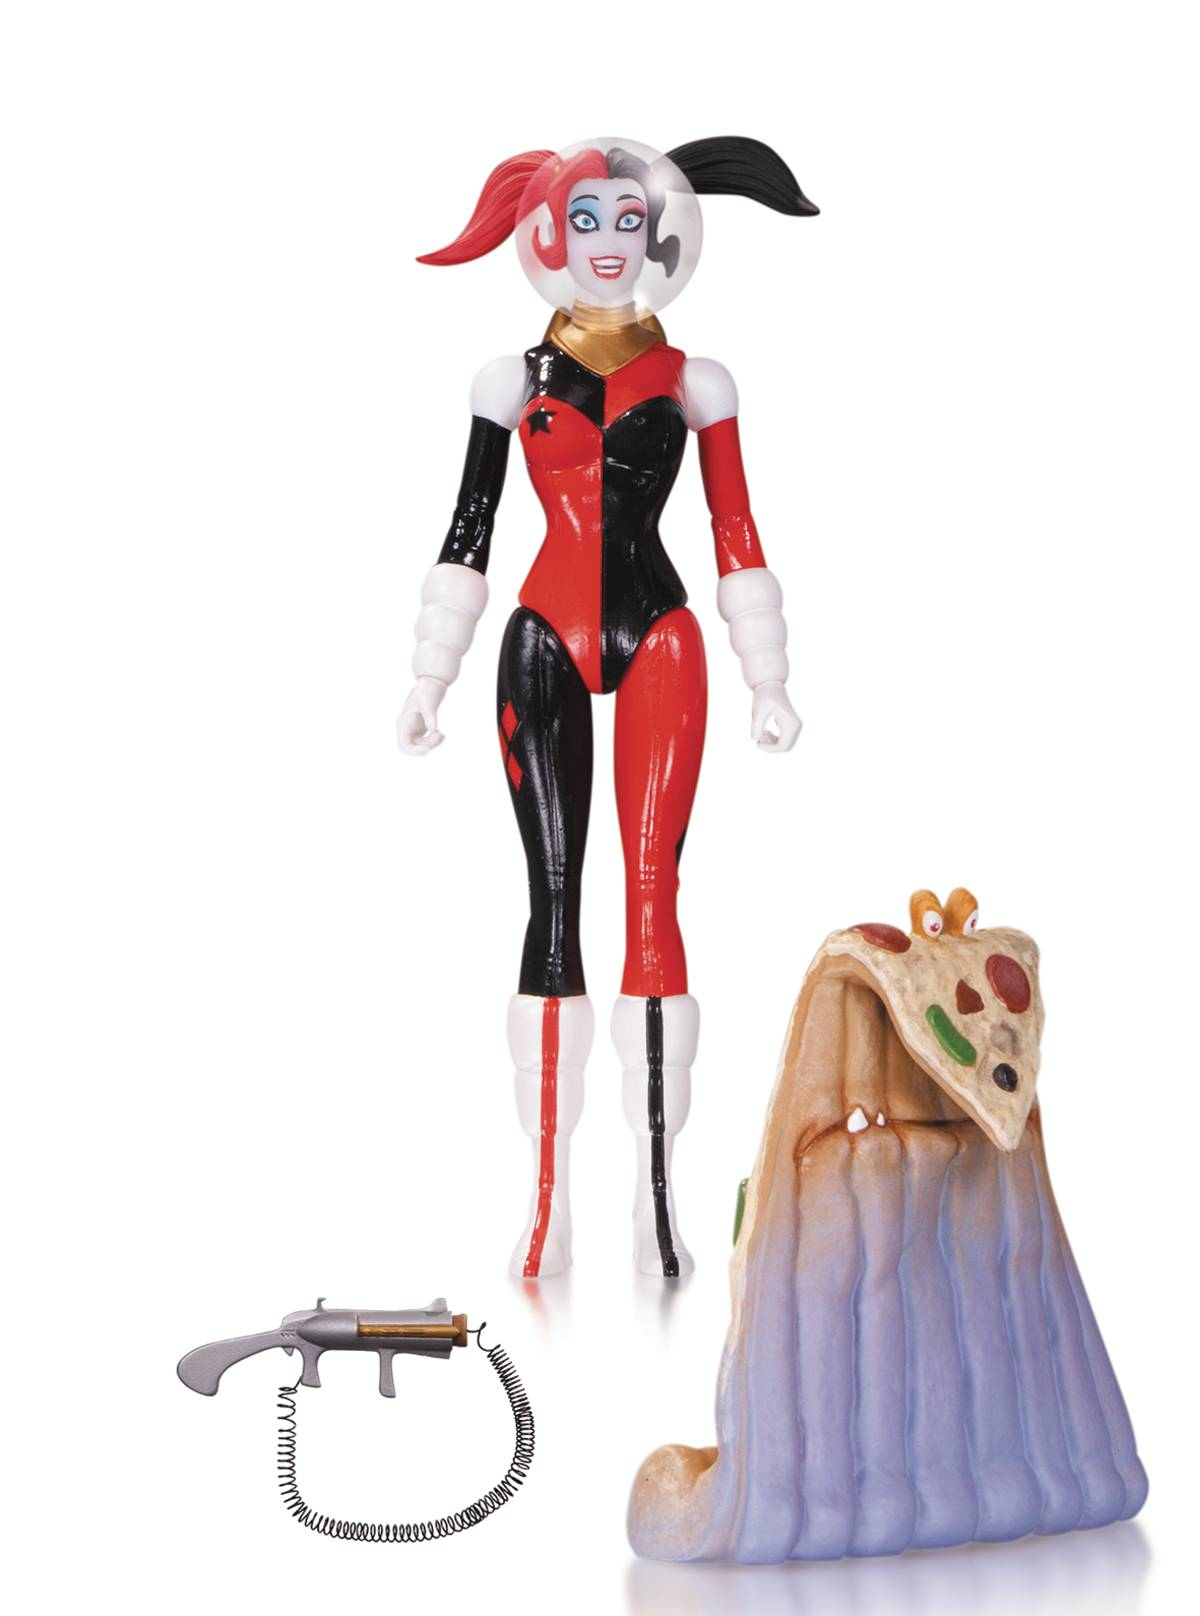 DC Comics Designer Series Conner Harley Quinn Spacesuit Figure